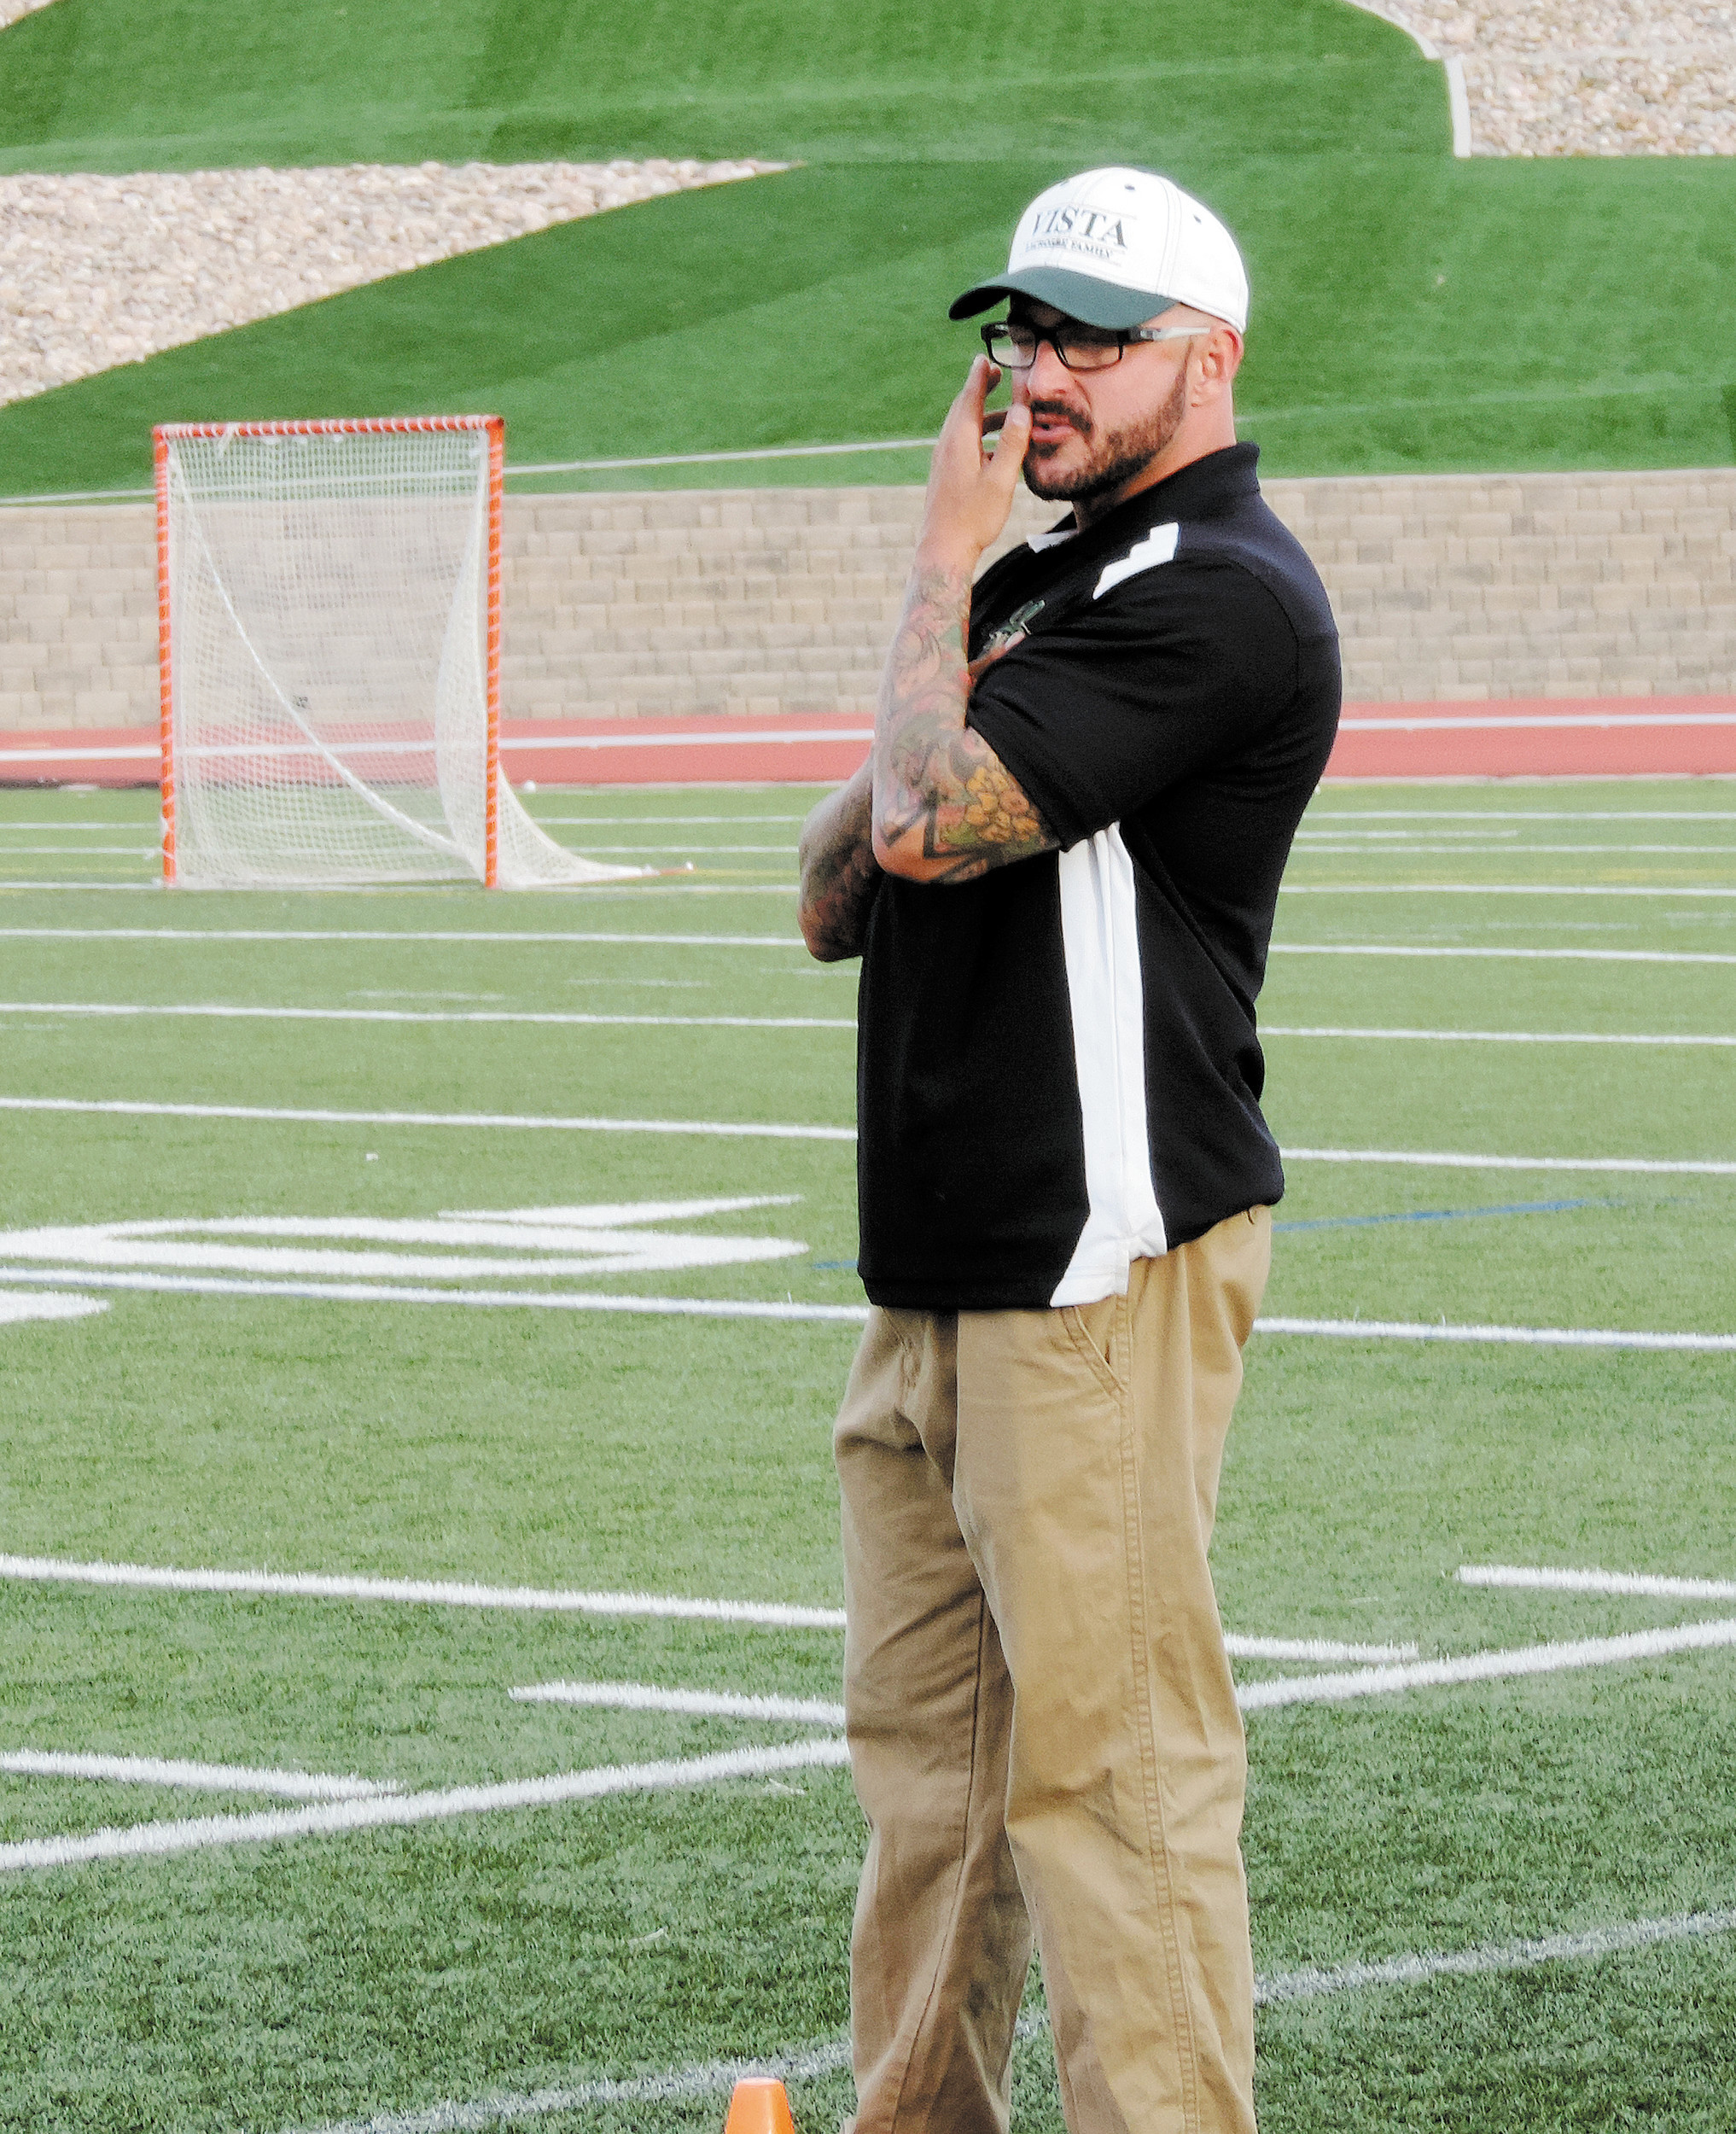 Mountain Vista Lacrosse Coach Remembered For Being